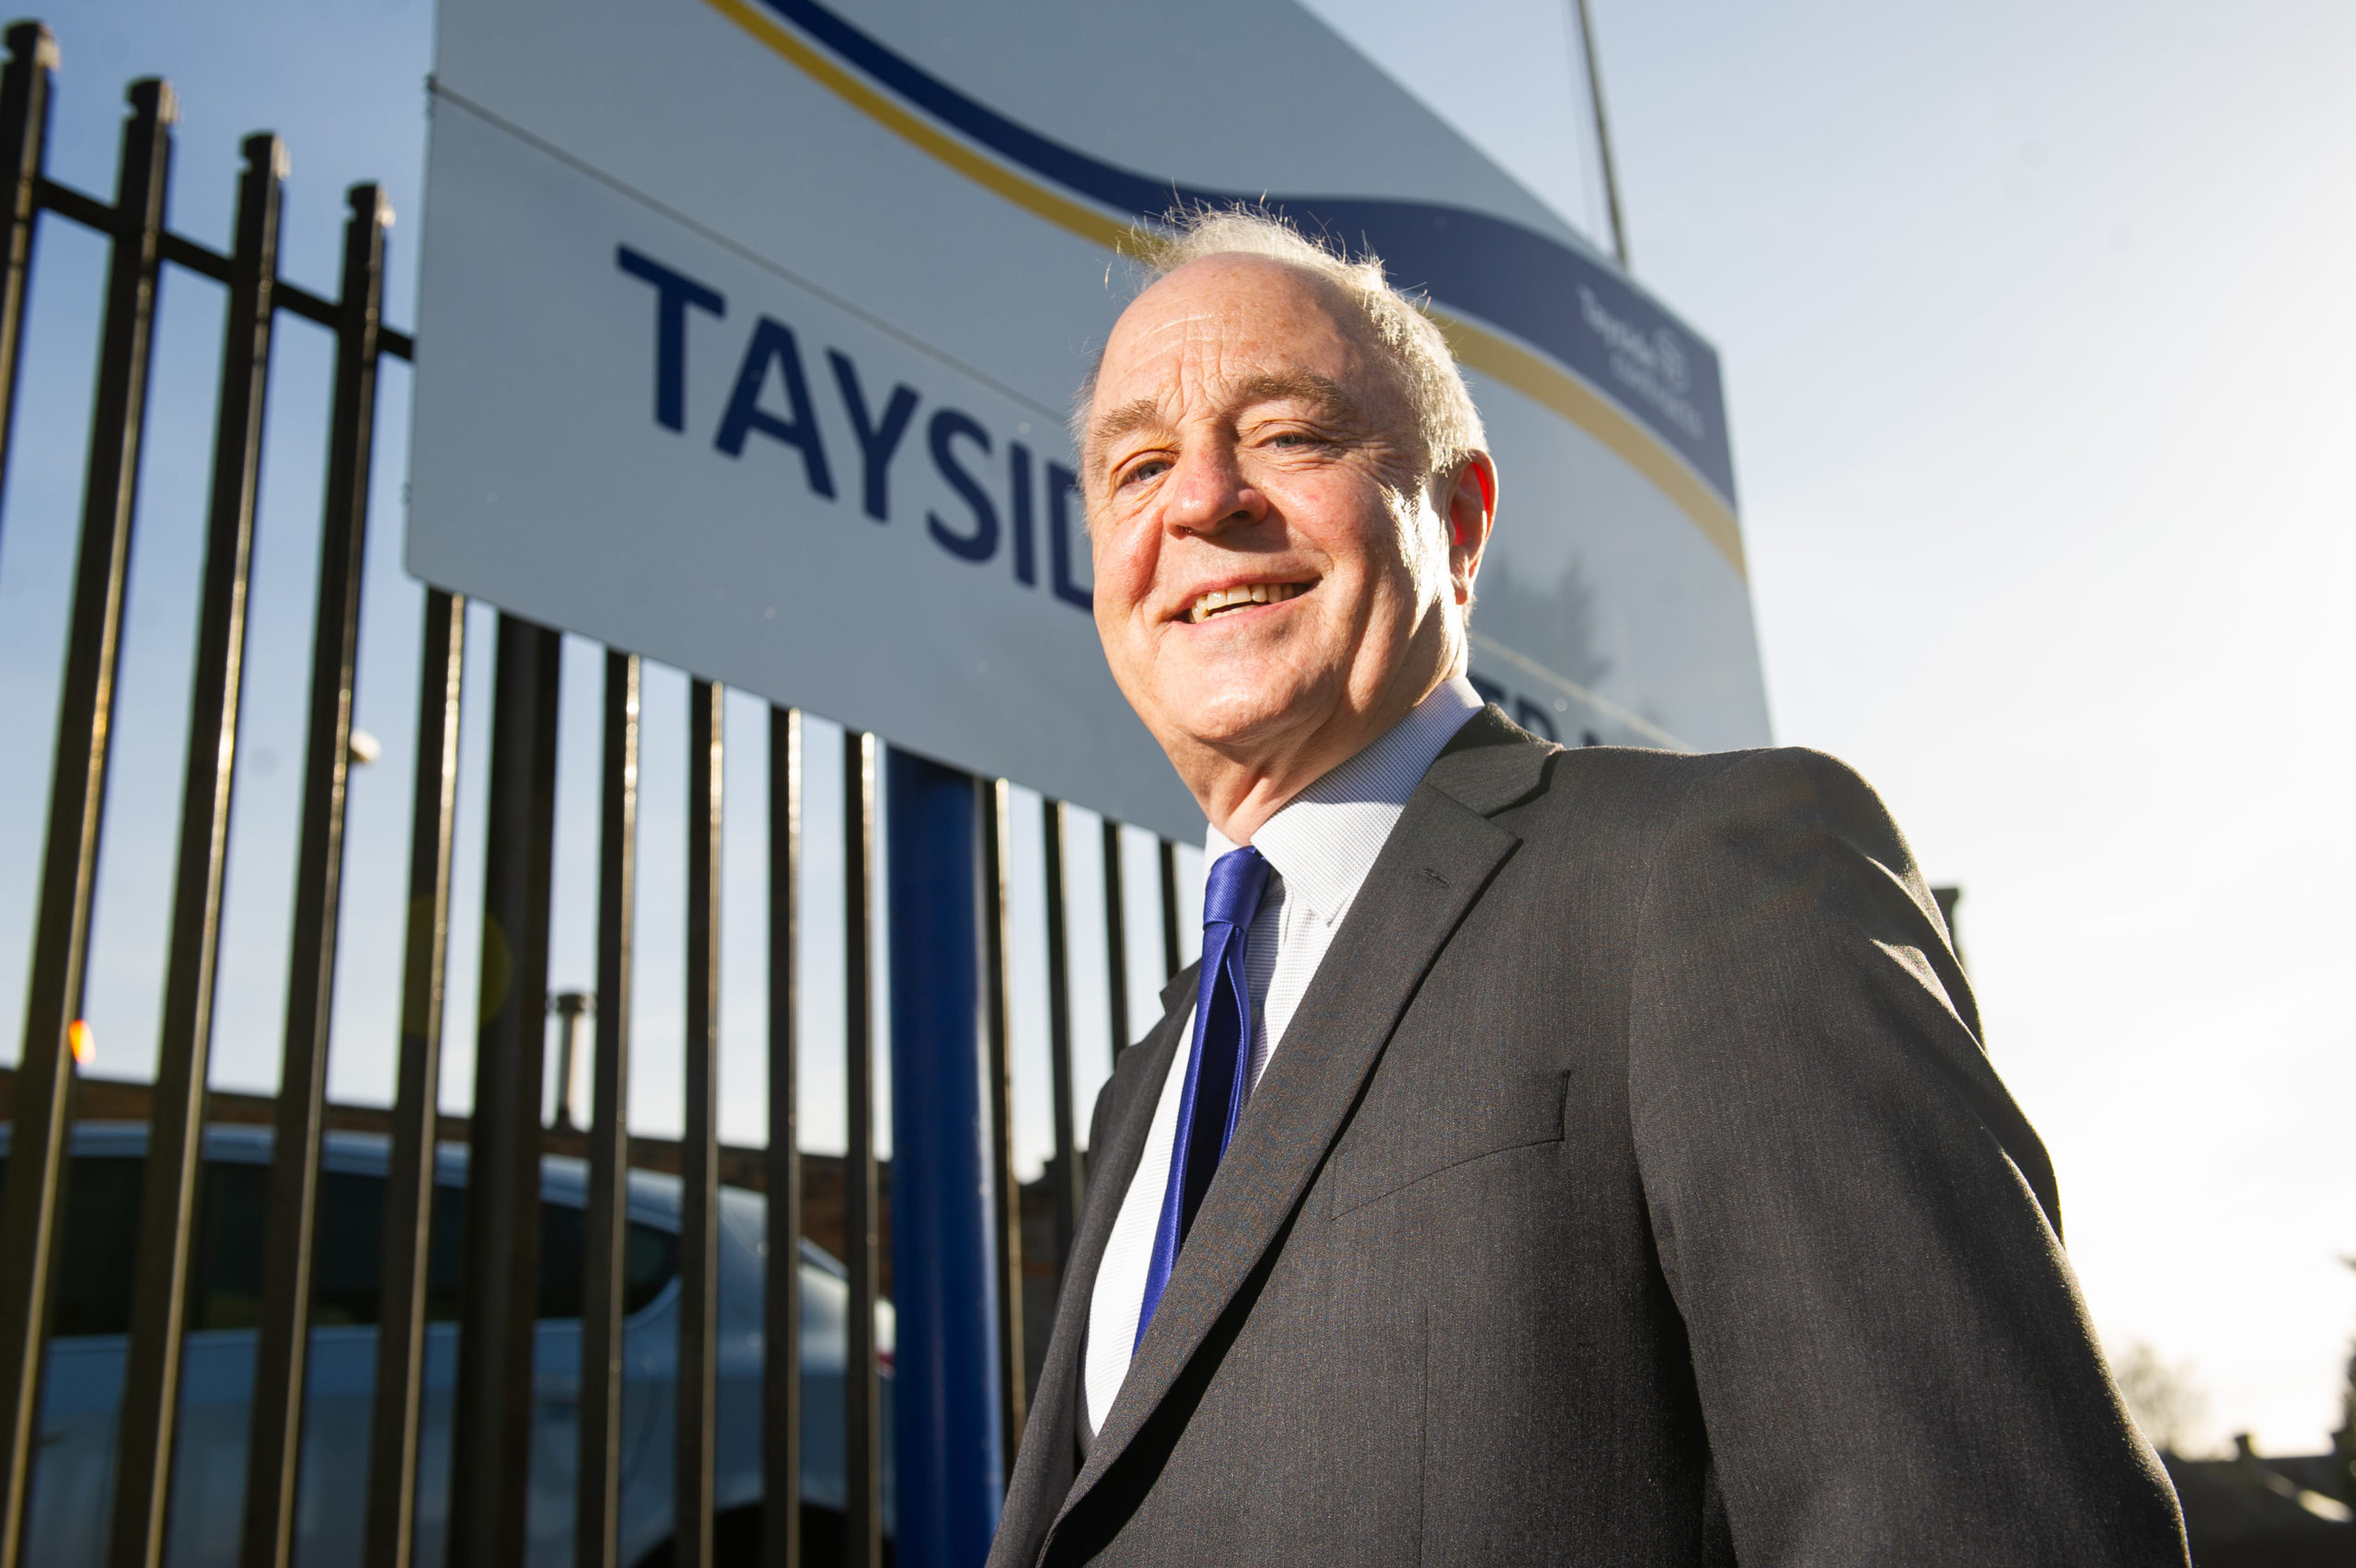 Iain Waddell, managing director of Tayside Contracts (Picture: Kim Cessford/ DCT Media)